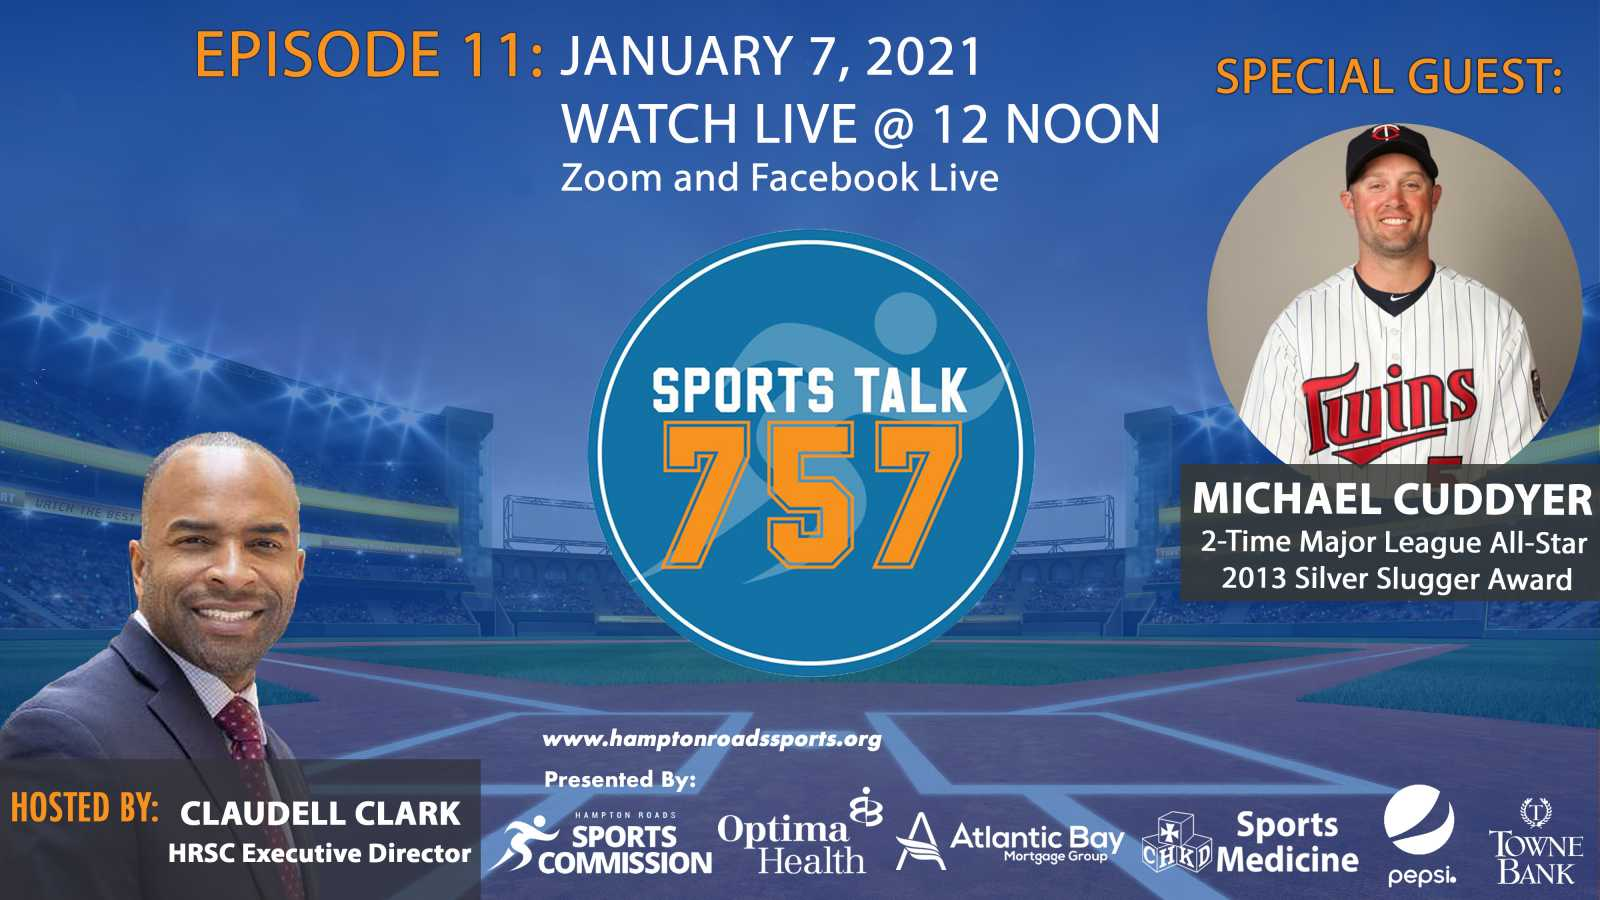 January SportsTalk 757 Shows Kick off with Former MLB All-Star Michael Cuddyer